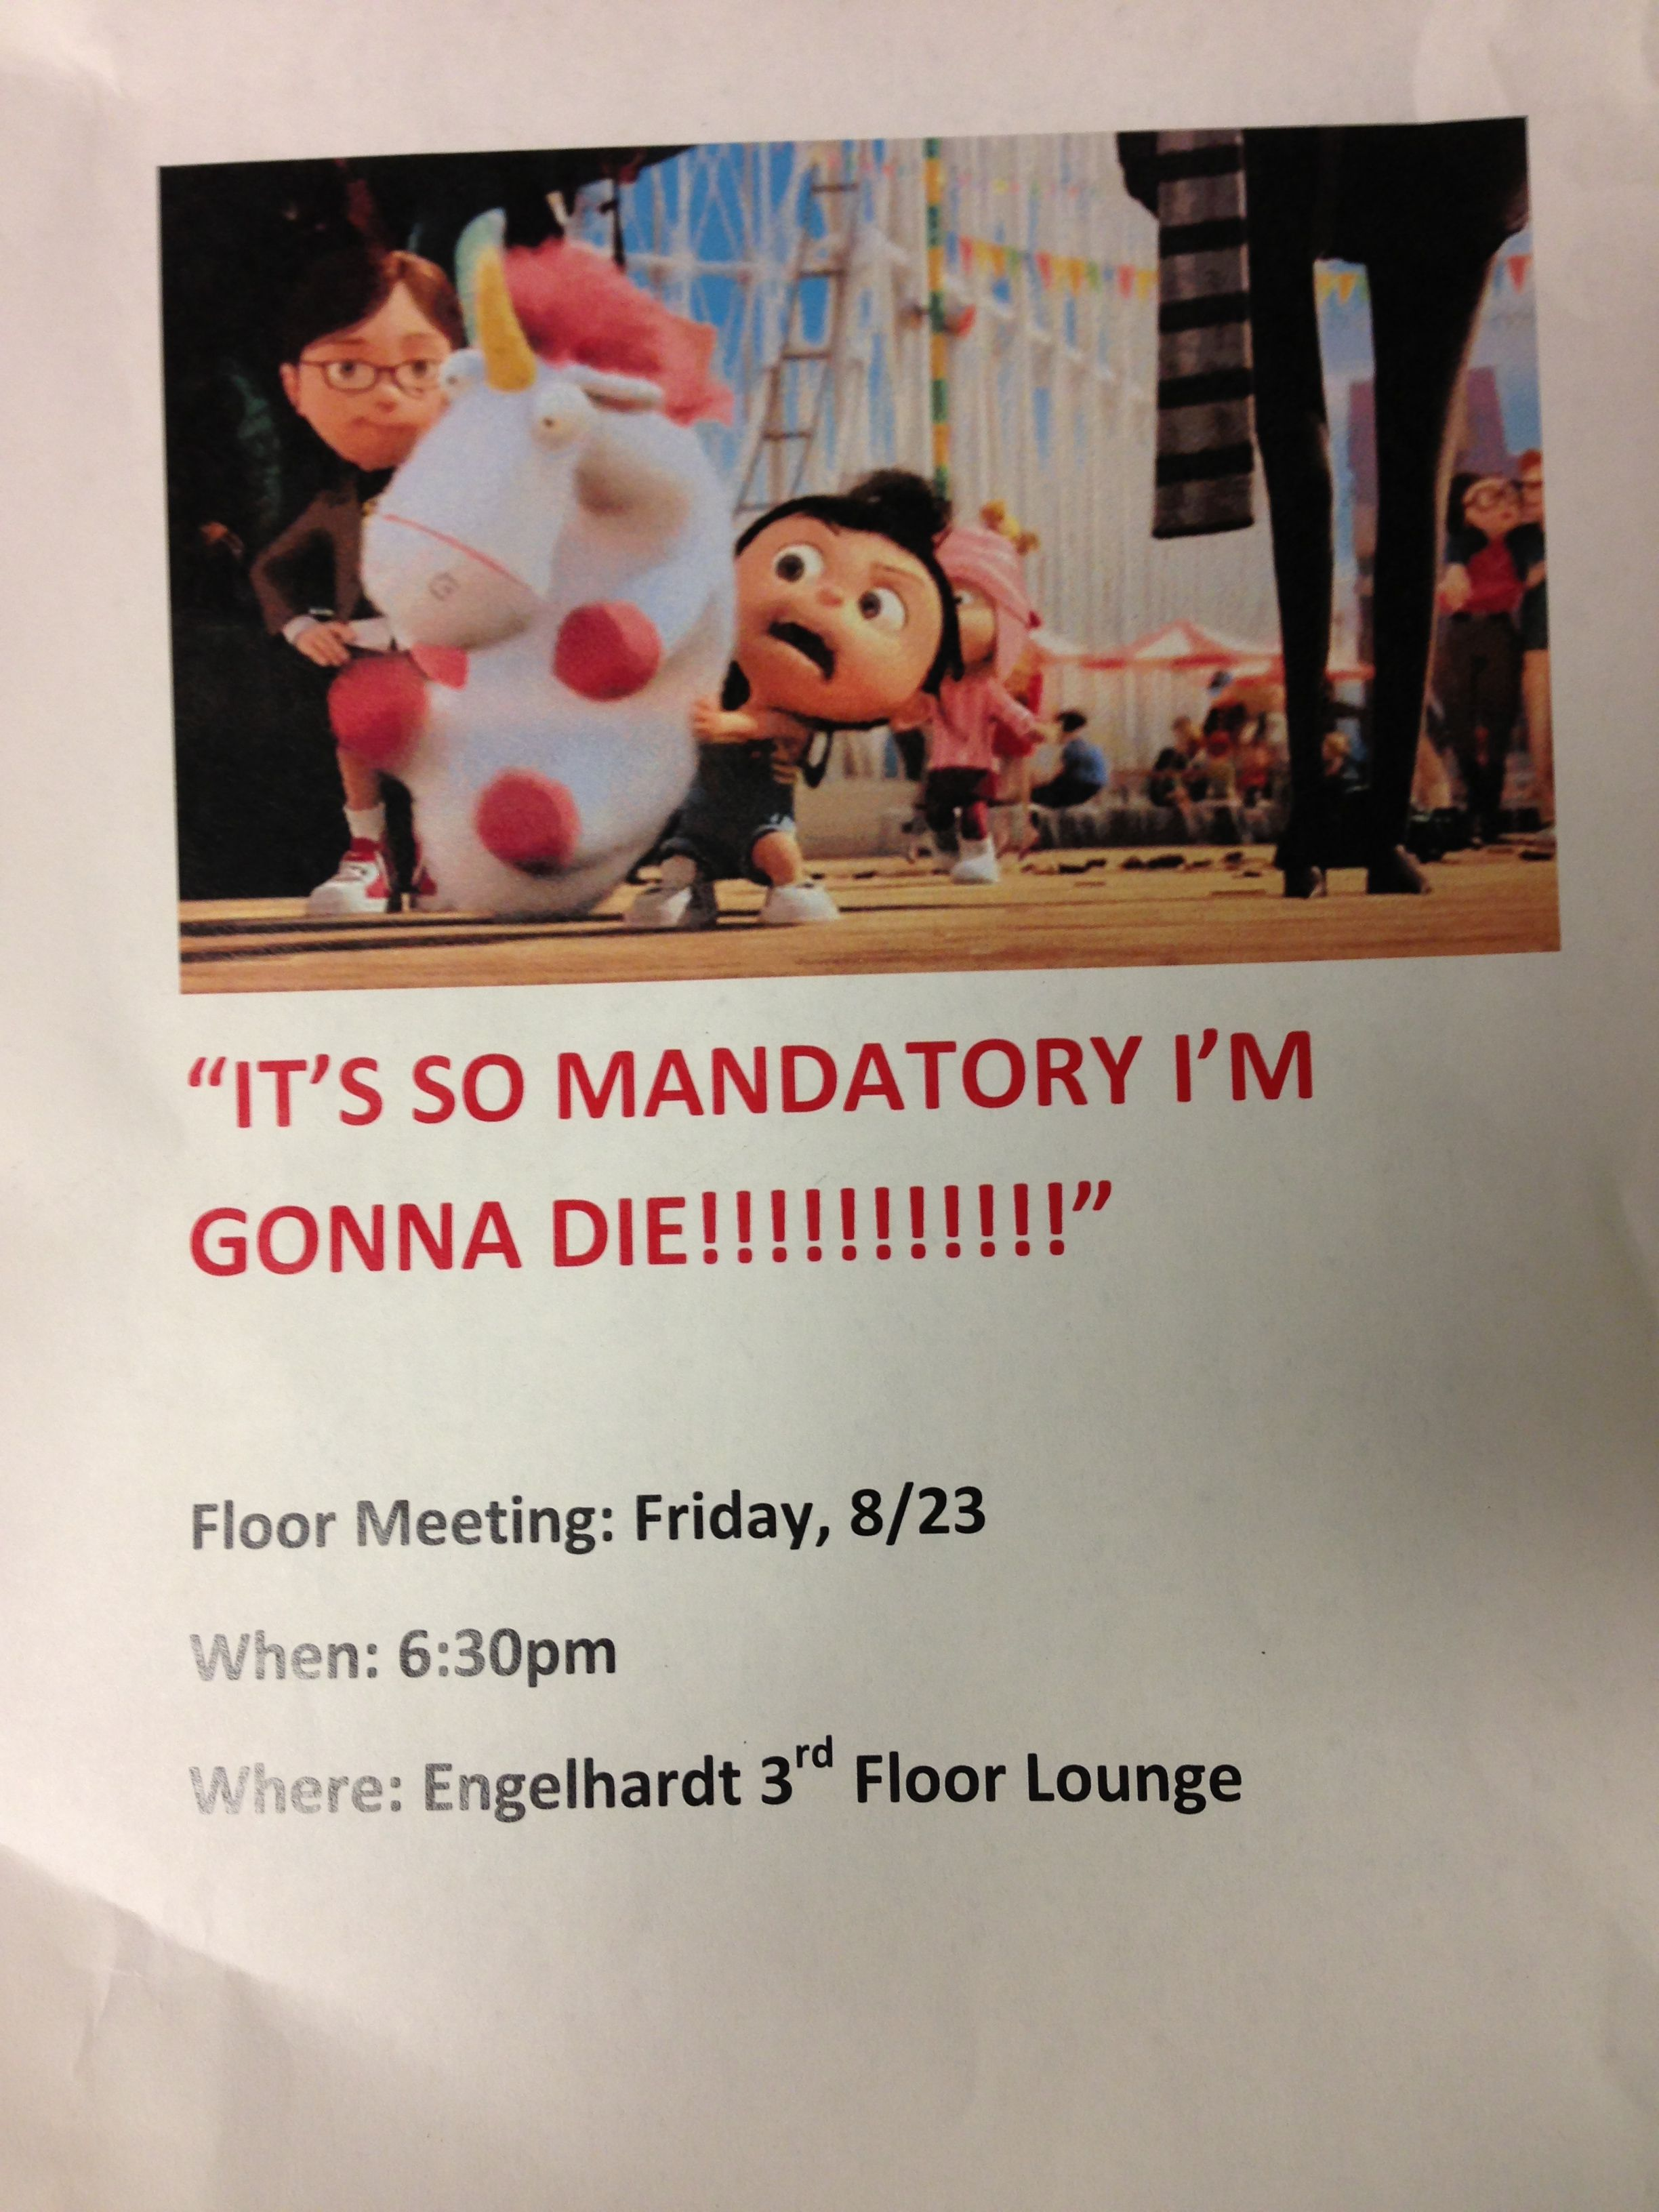 For a mandatory floor meeting despicable me themed